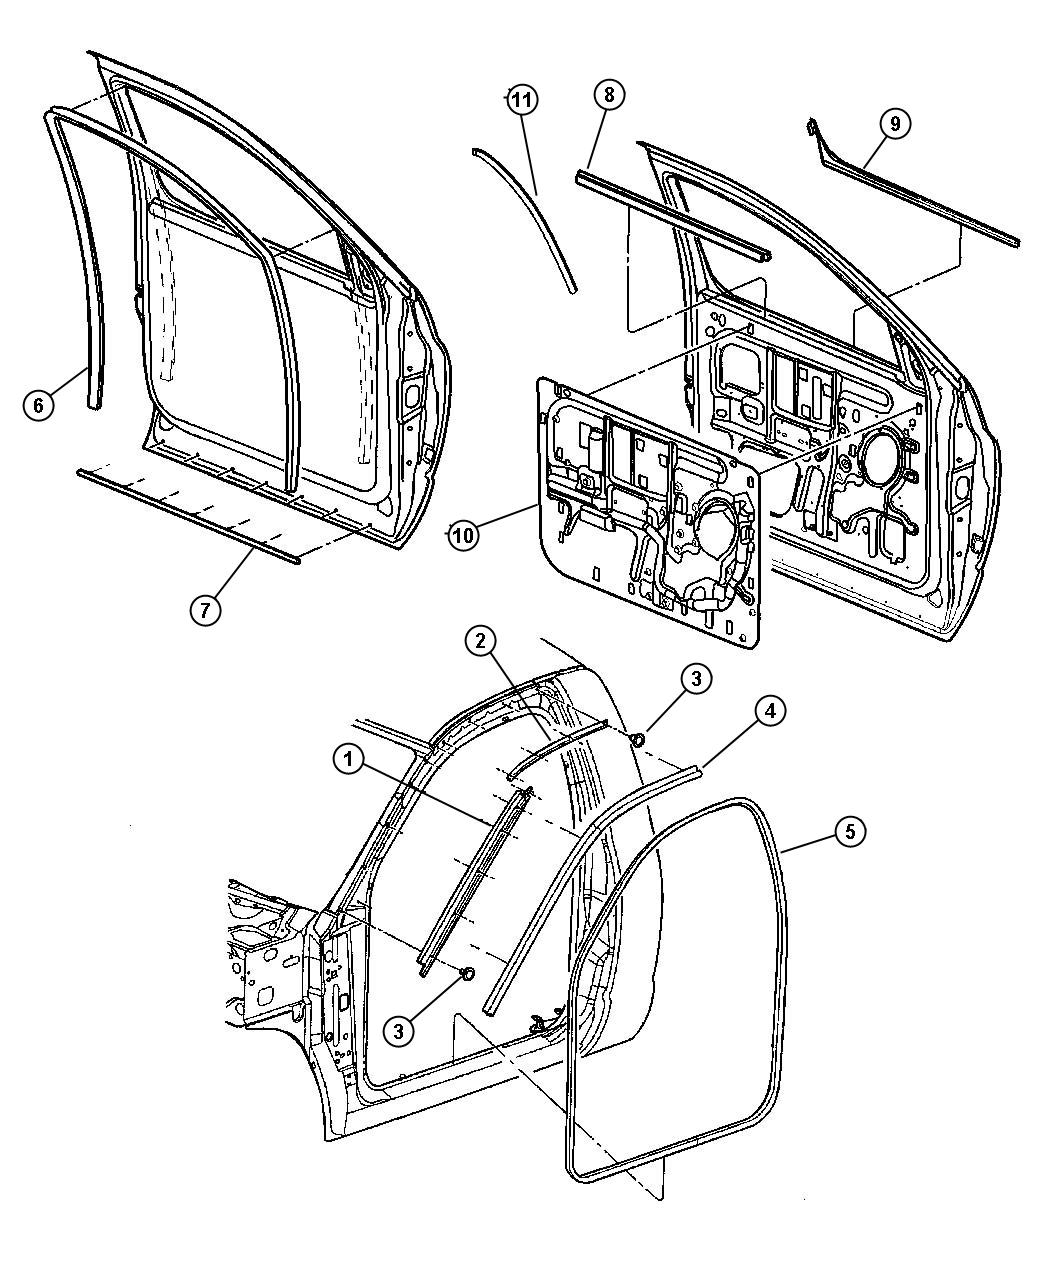 321616884078 besides 55276943AD furthermore Fuel Pump Replacement Diy V70xc furthermore 99 Chevy Lumina Engine Diagram also Index. on dodge ram door seal diagram